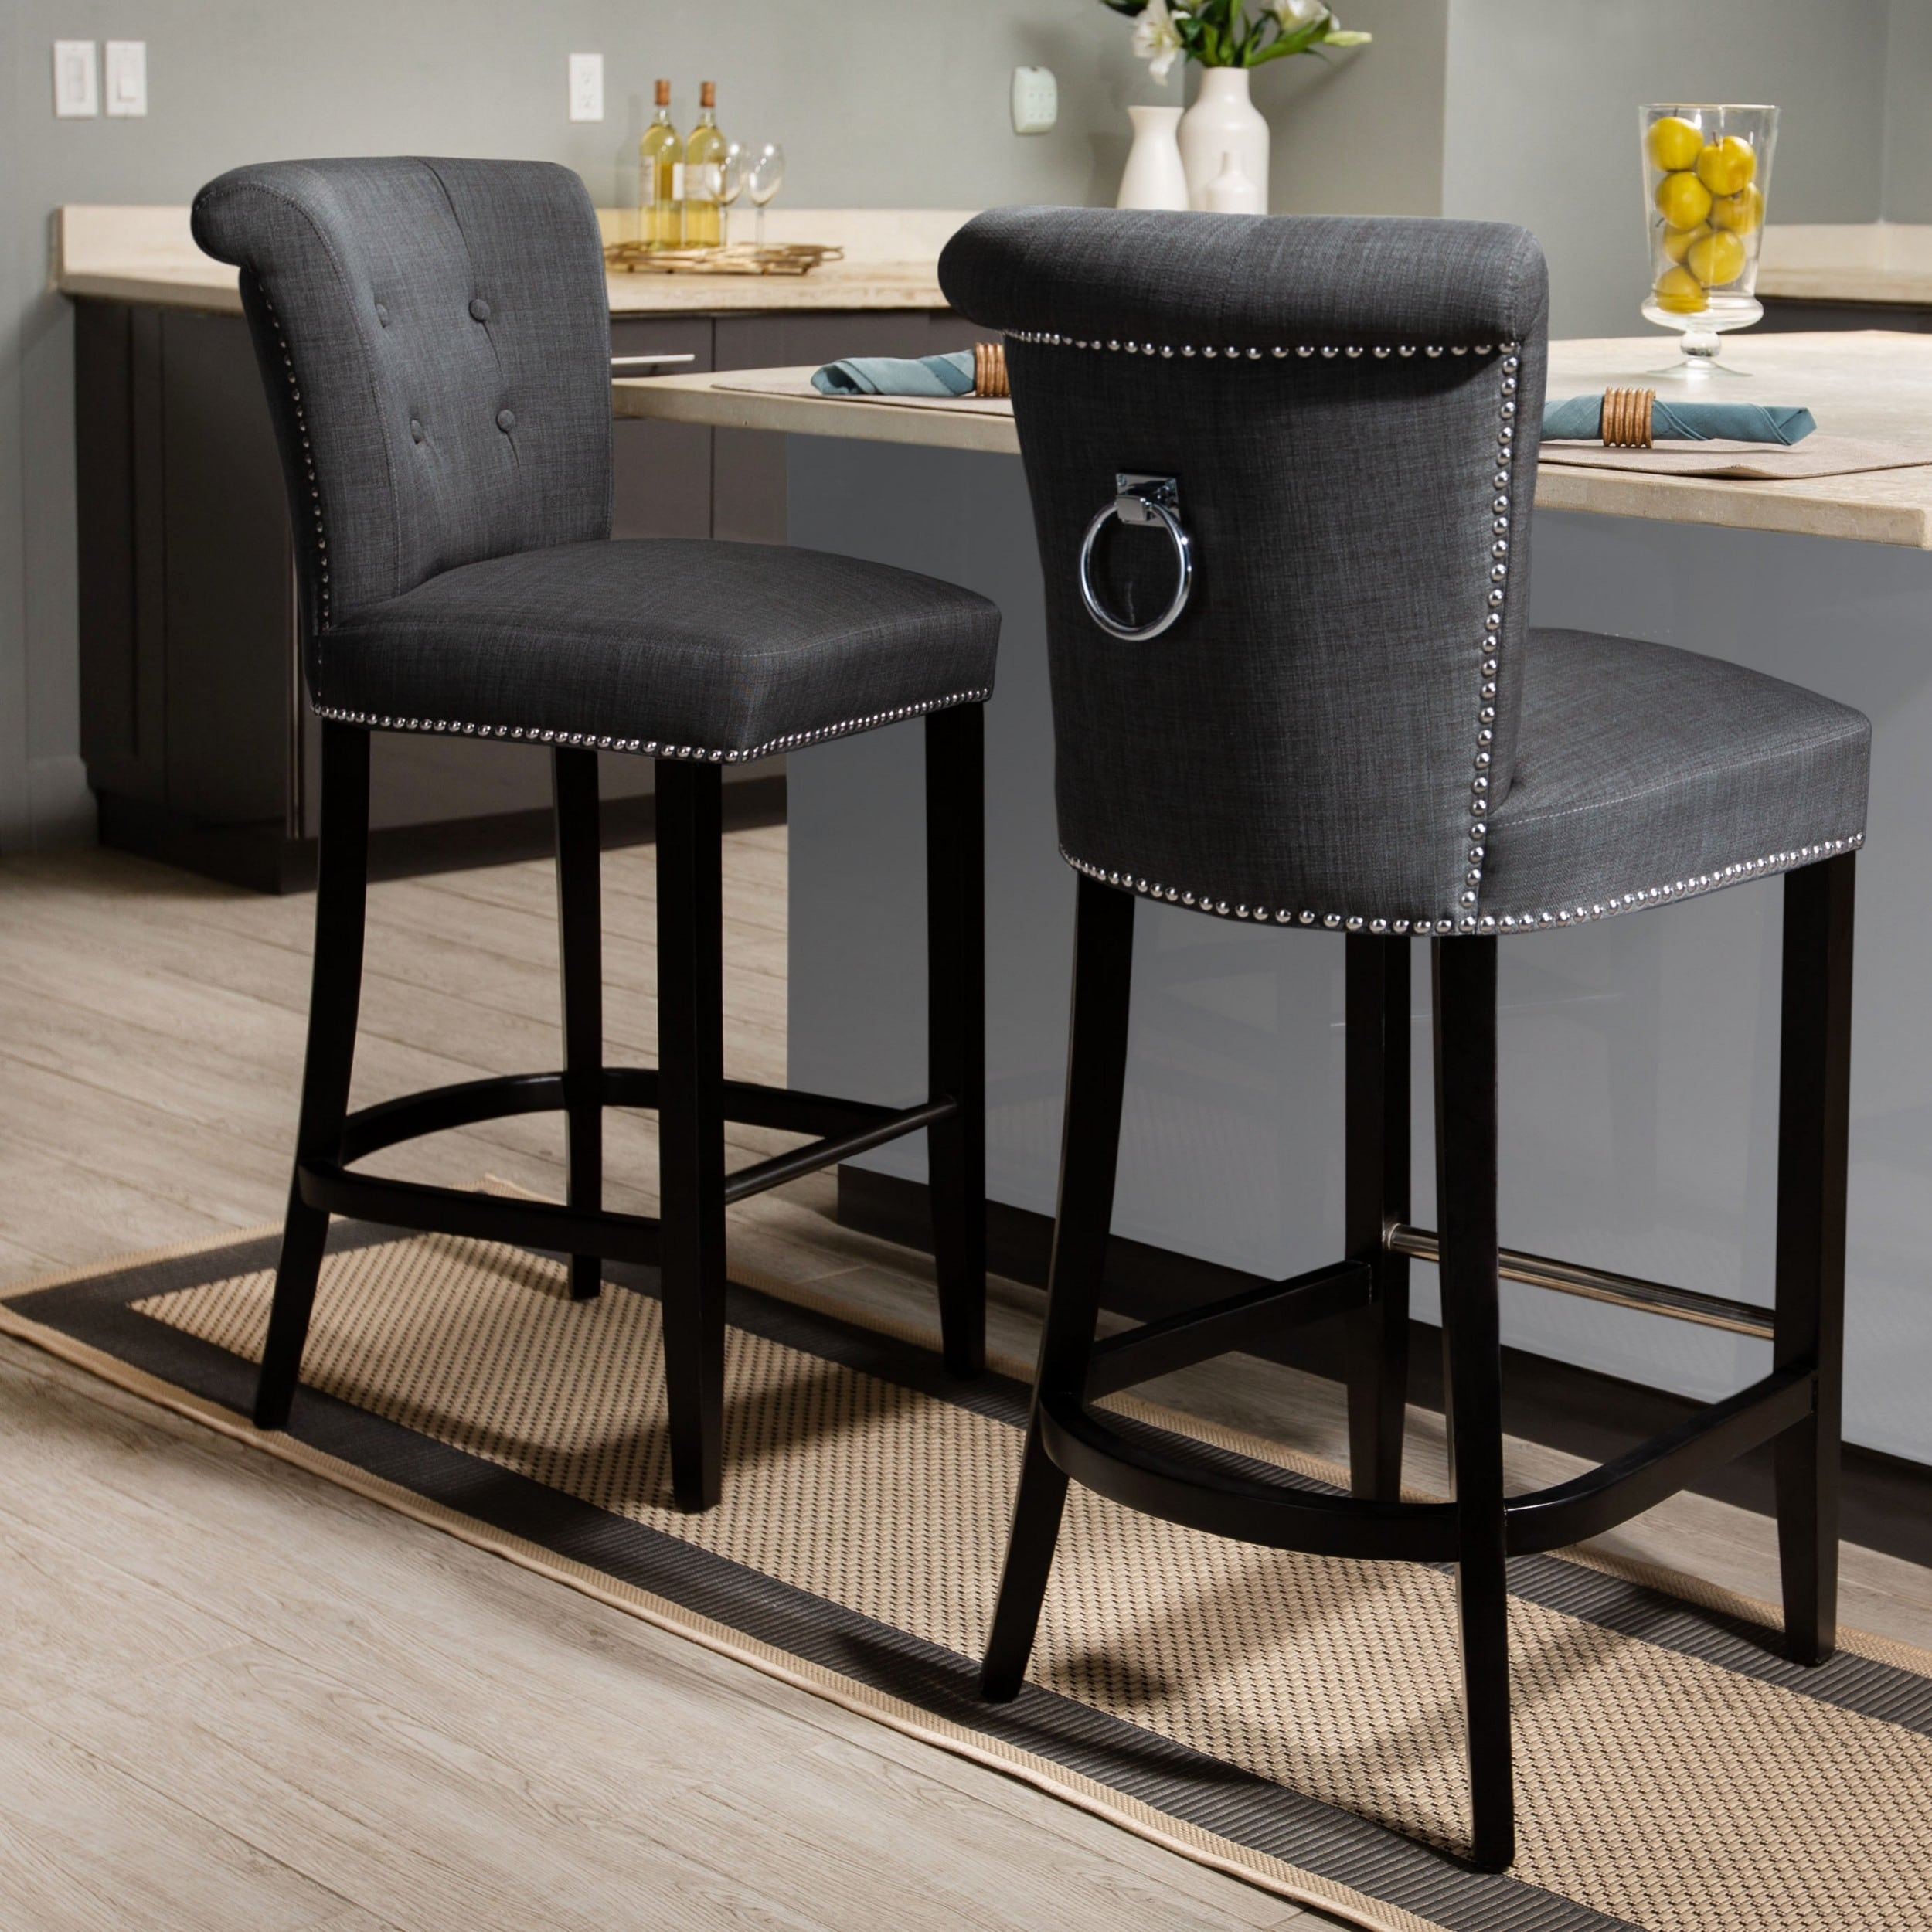 Safavieh Addo Charcoal Ring 30 Inch Bar Stool 19 6 X 24 2 X 43 7 Overstock 9542152